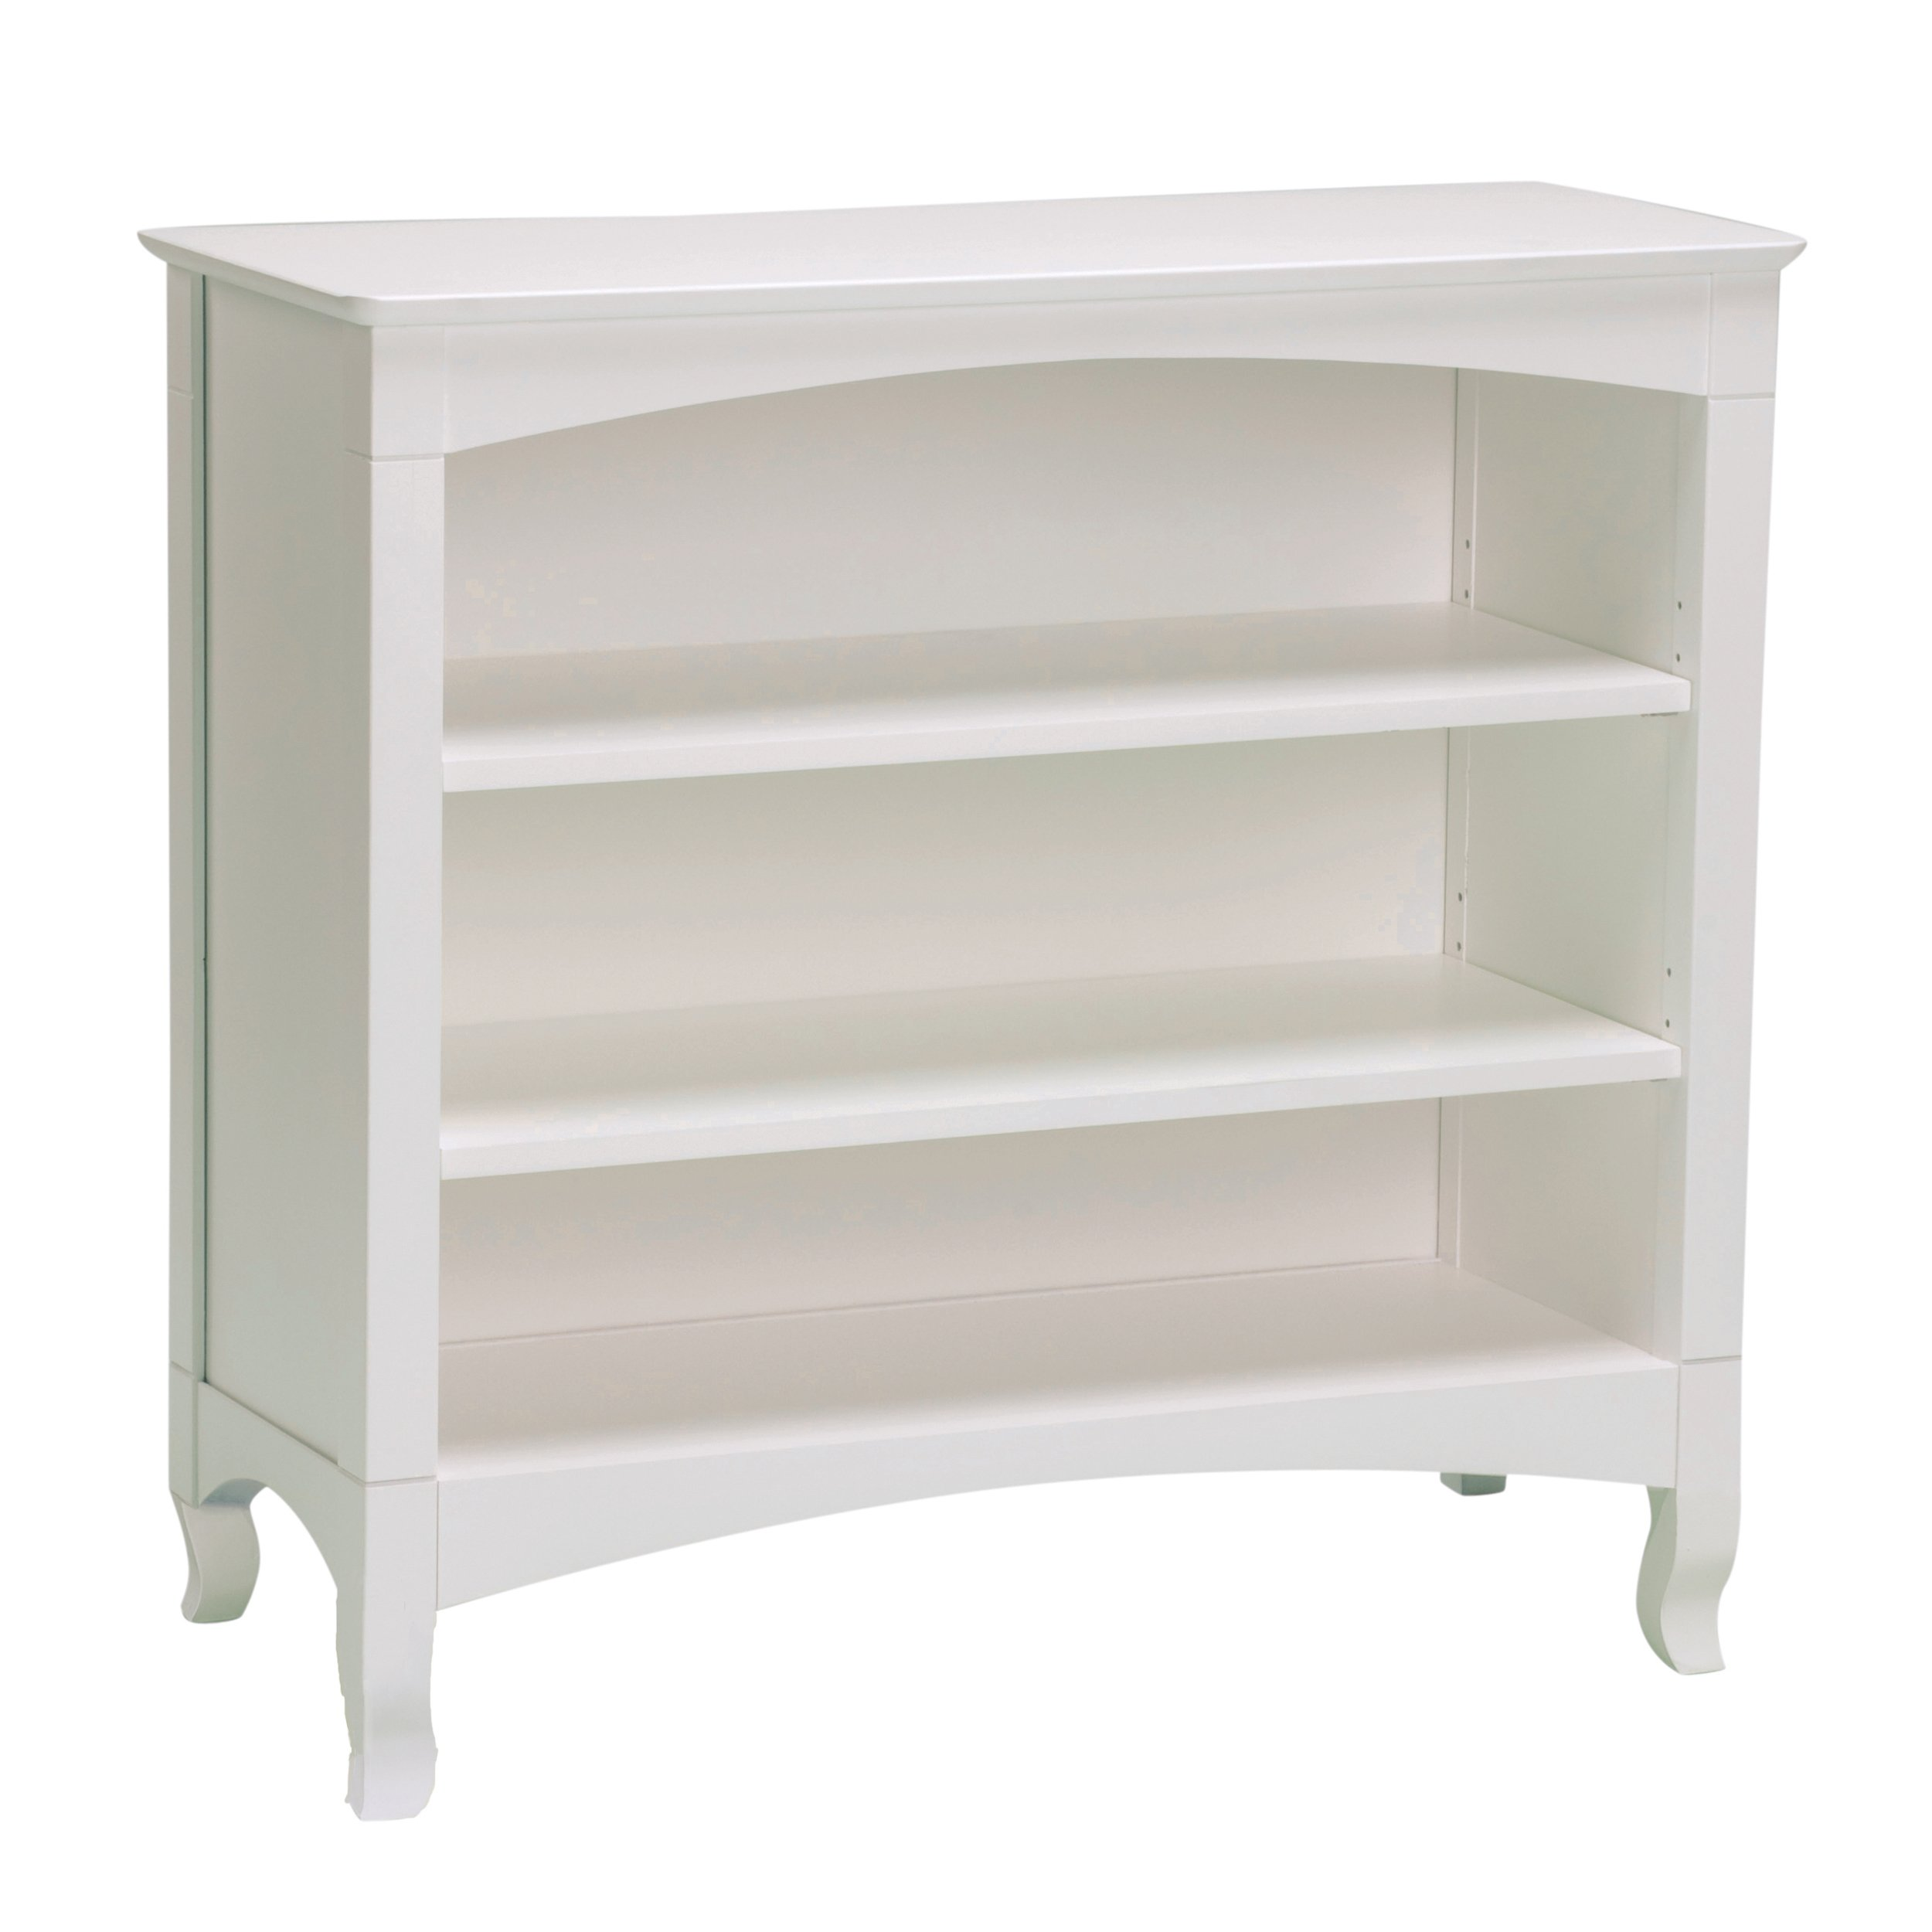 Bolton 8365500 Emma Low Bookcase, White